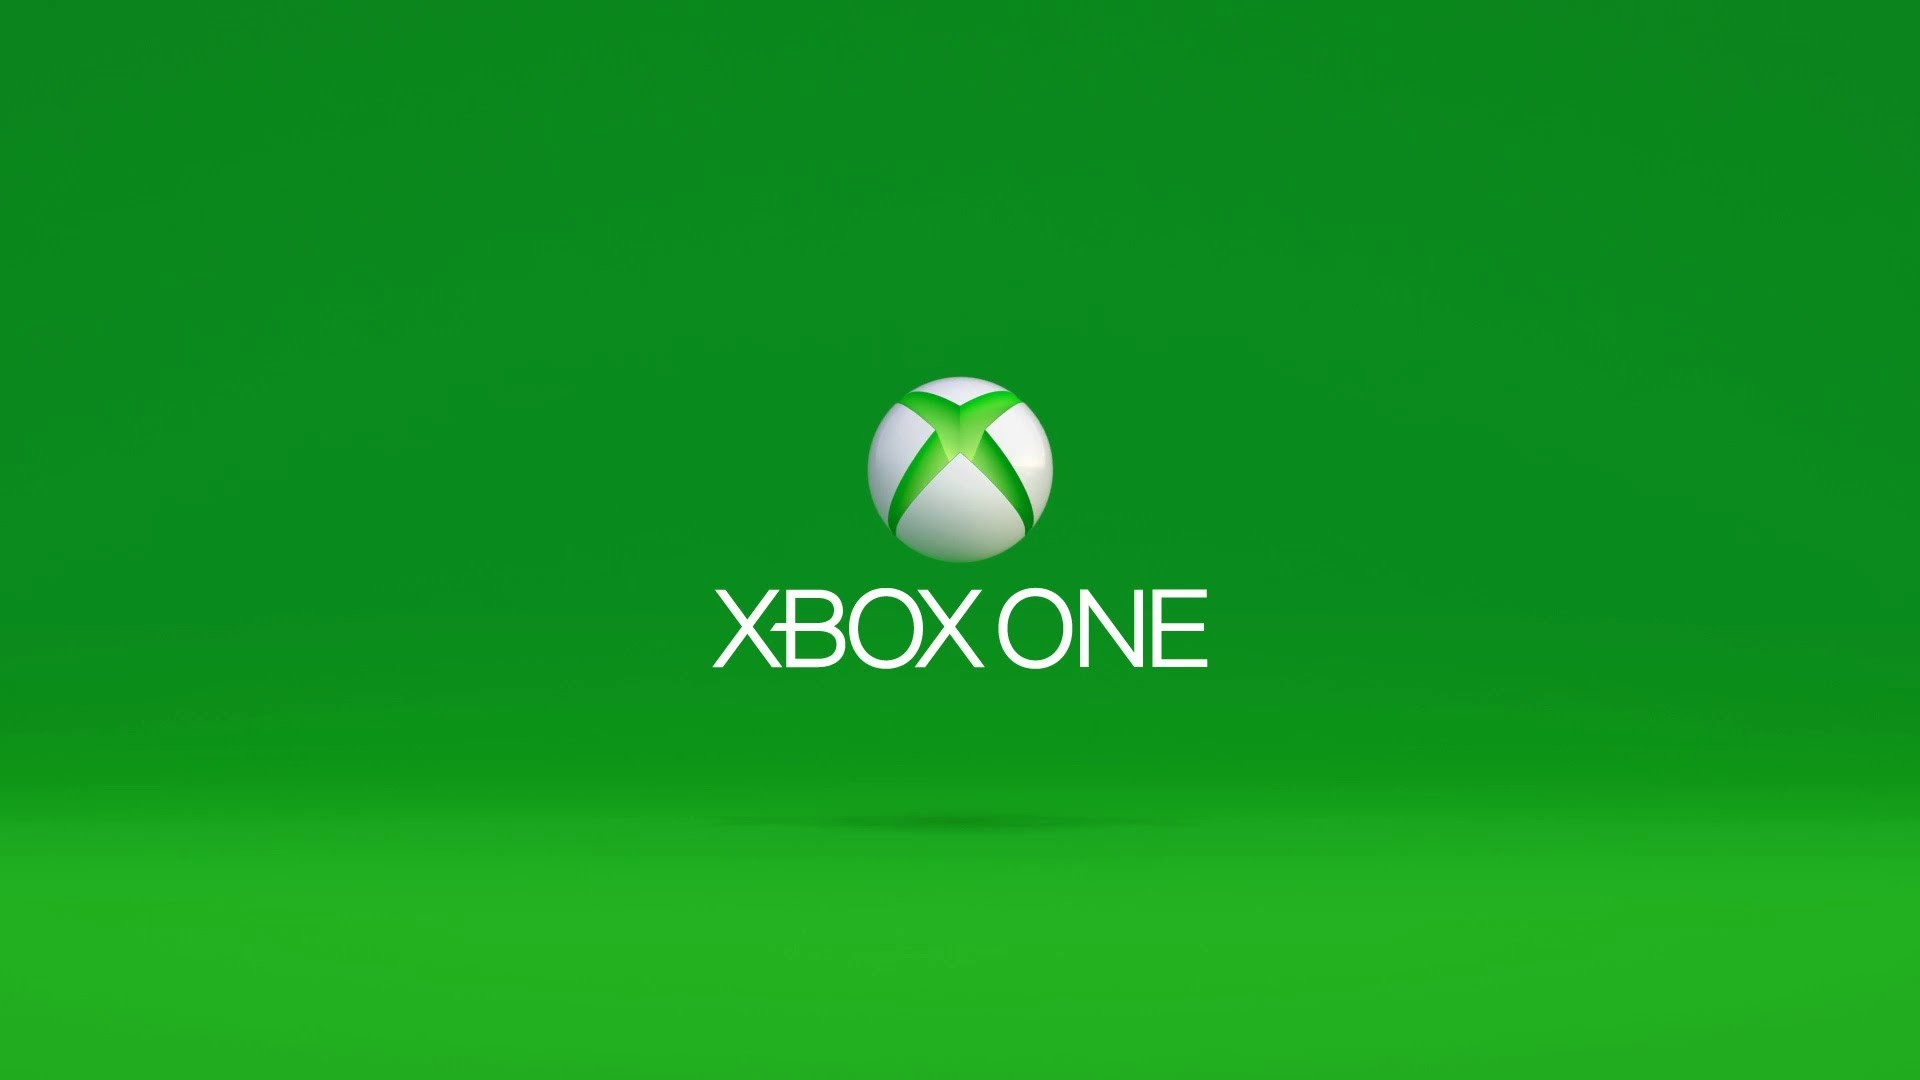 Xbox 360 wallpaper hd 64 images - Xbox one wallpaper 1920x1080 ...